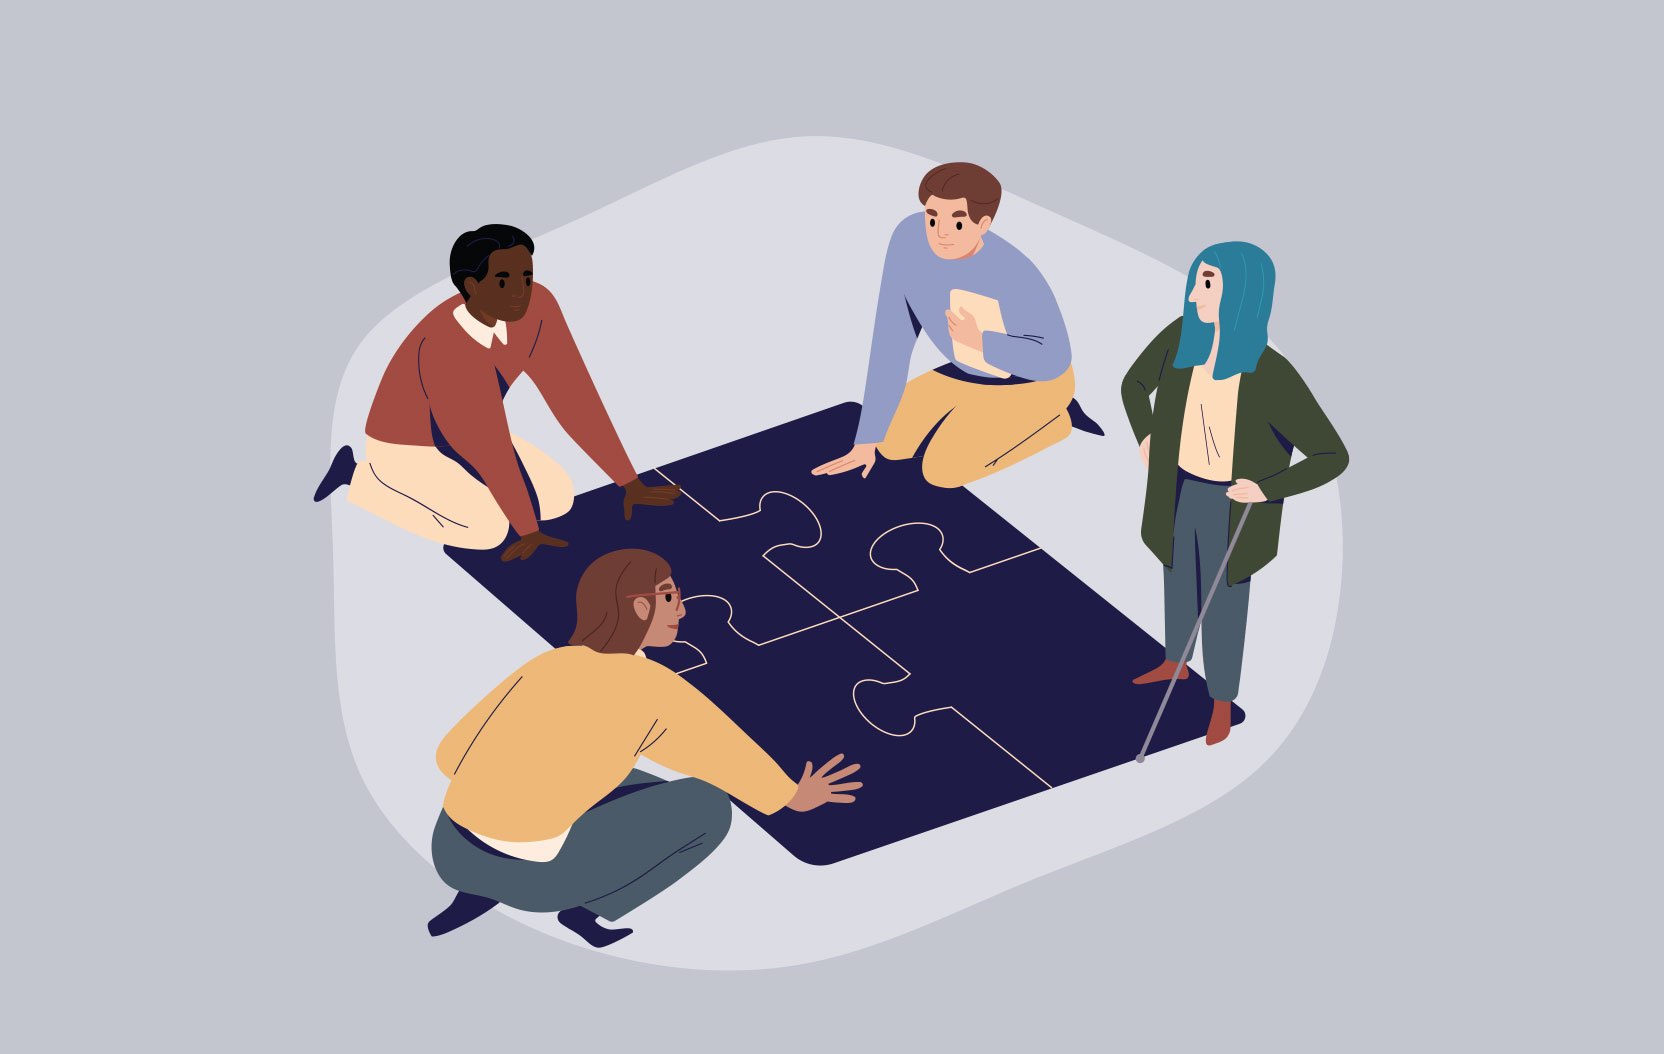 Group of people putting a large puzzle together